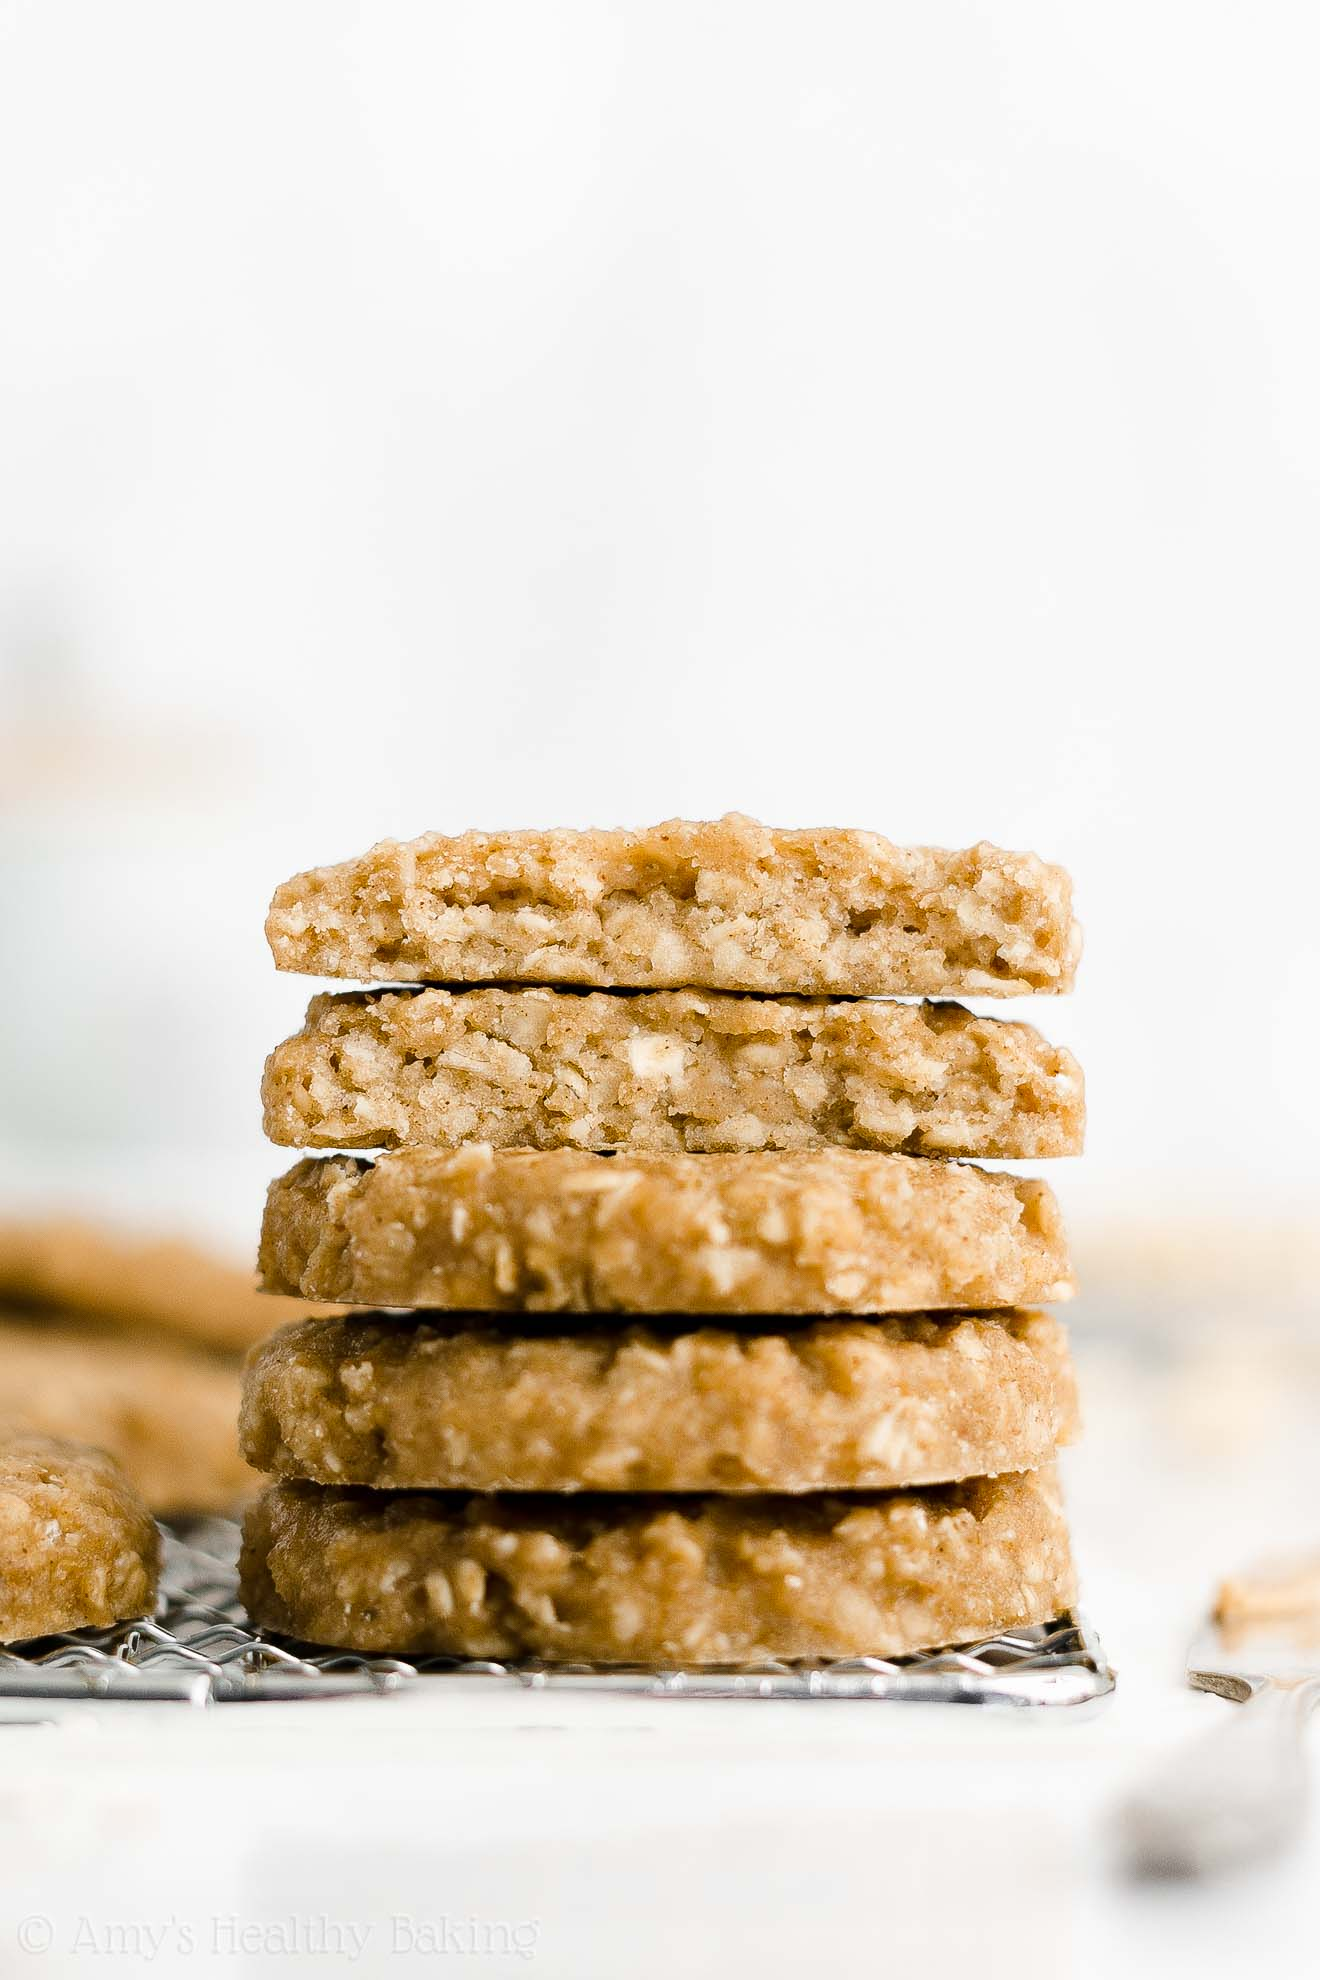 Easy Healthy Flourless Eggless Dairy Free Peanut Butter Breakfast Cookies